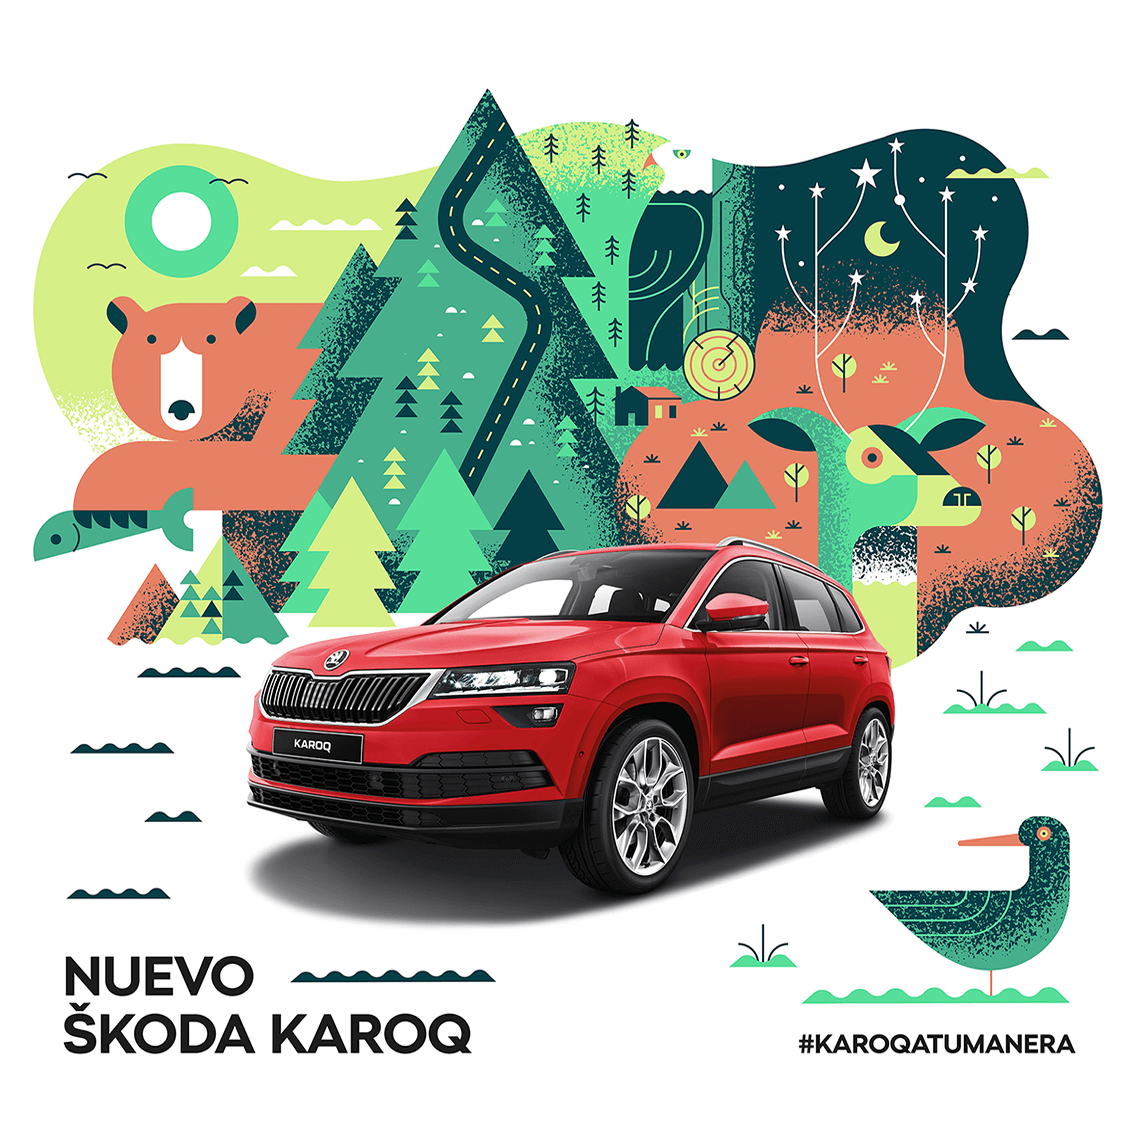 skoda-karoq-illustration-salmorejostudio